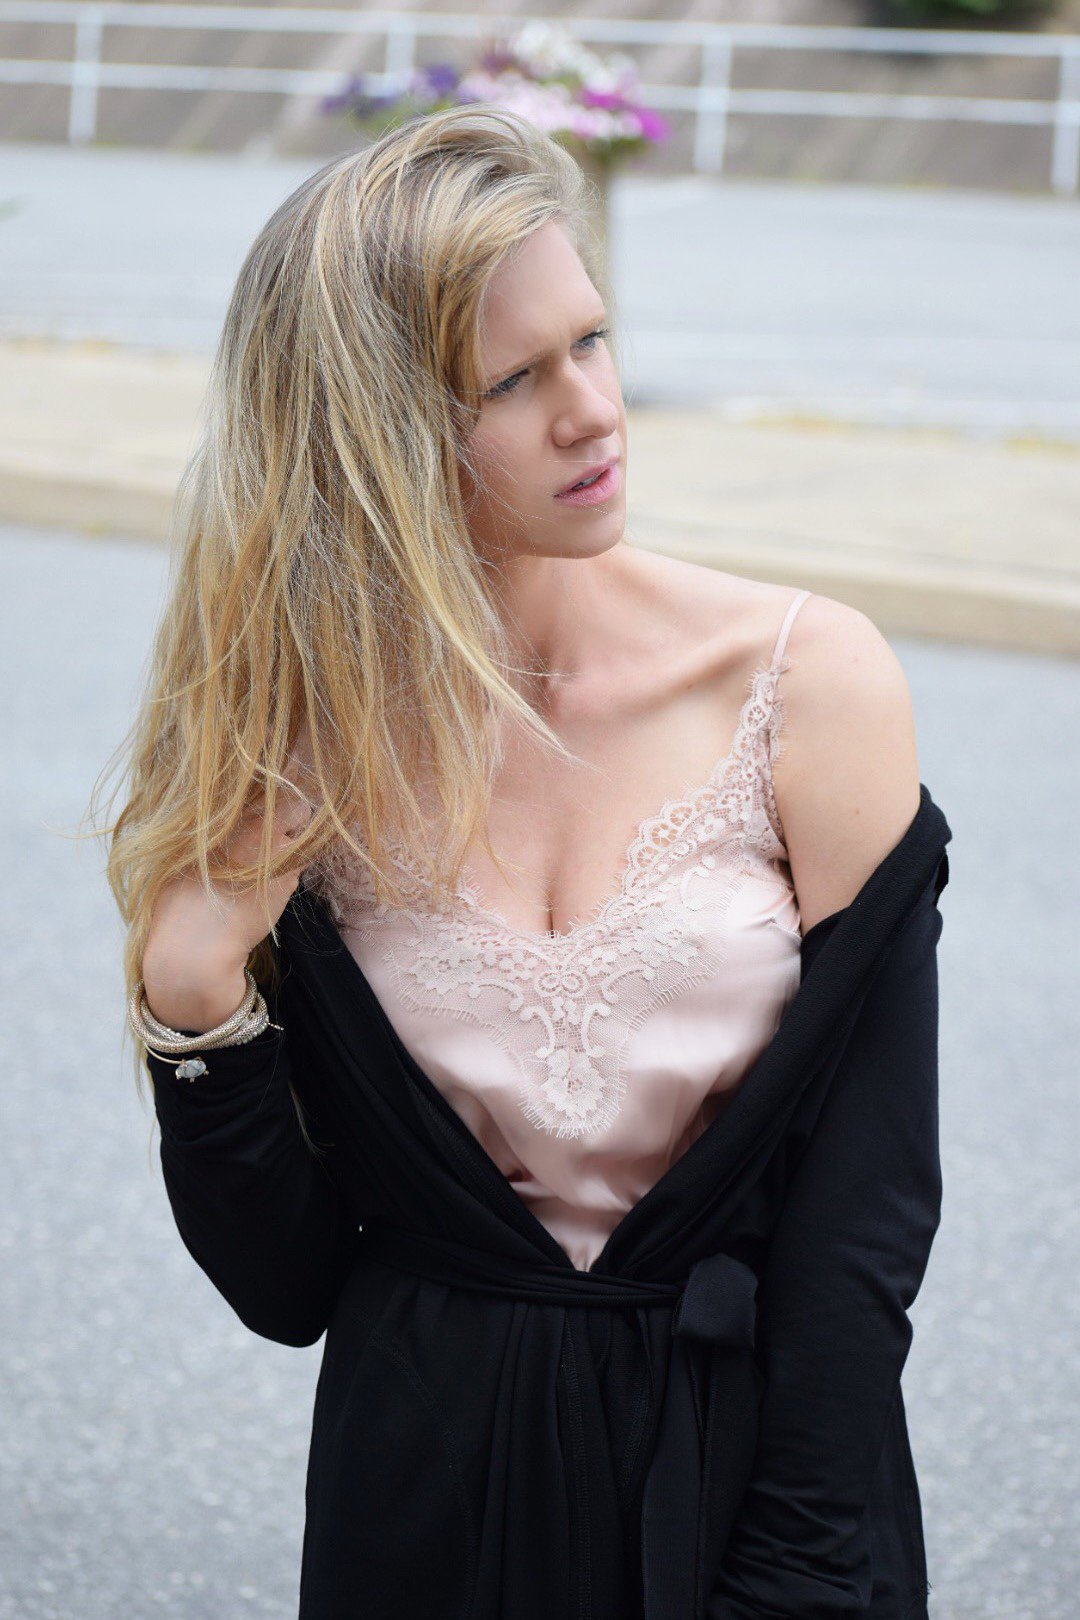 Fall Fashion, lace cami and black cardigan